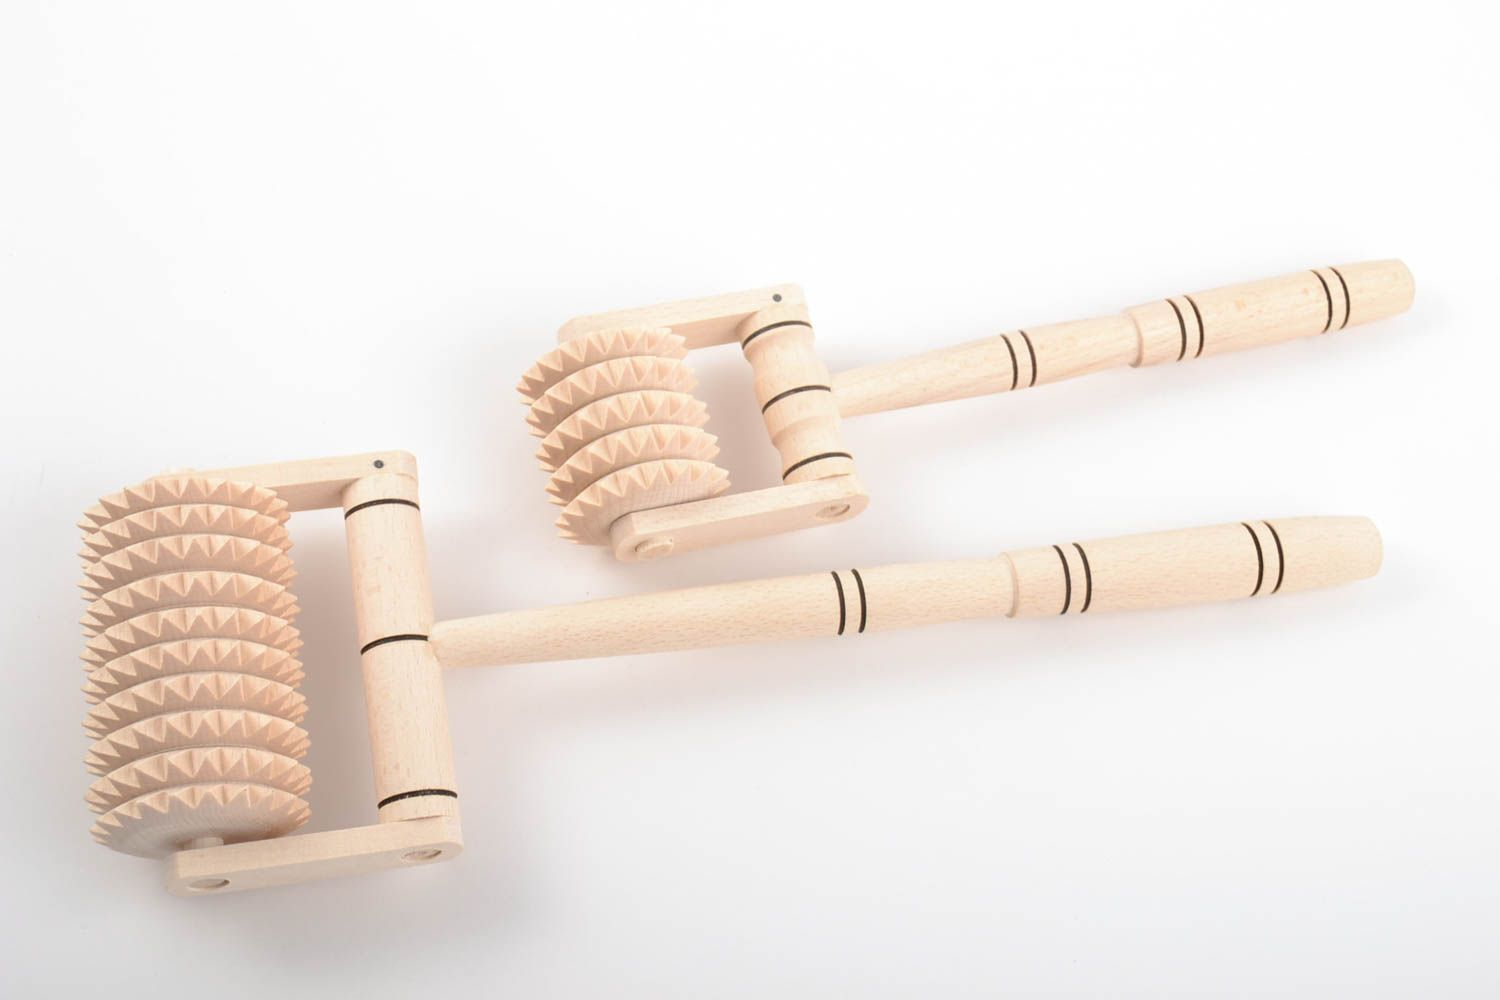 Set of handmade wooden foot and back massagers 2 pieces of different sizes photo 2